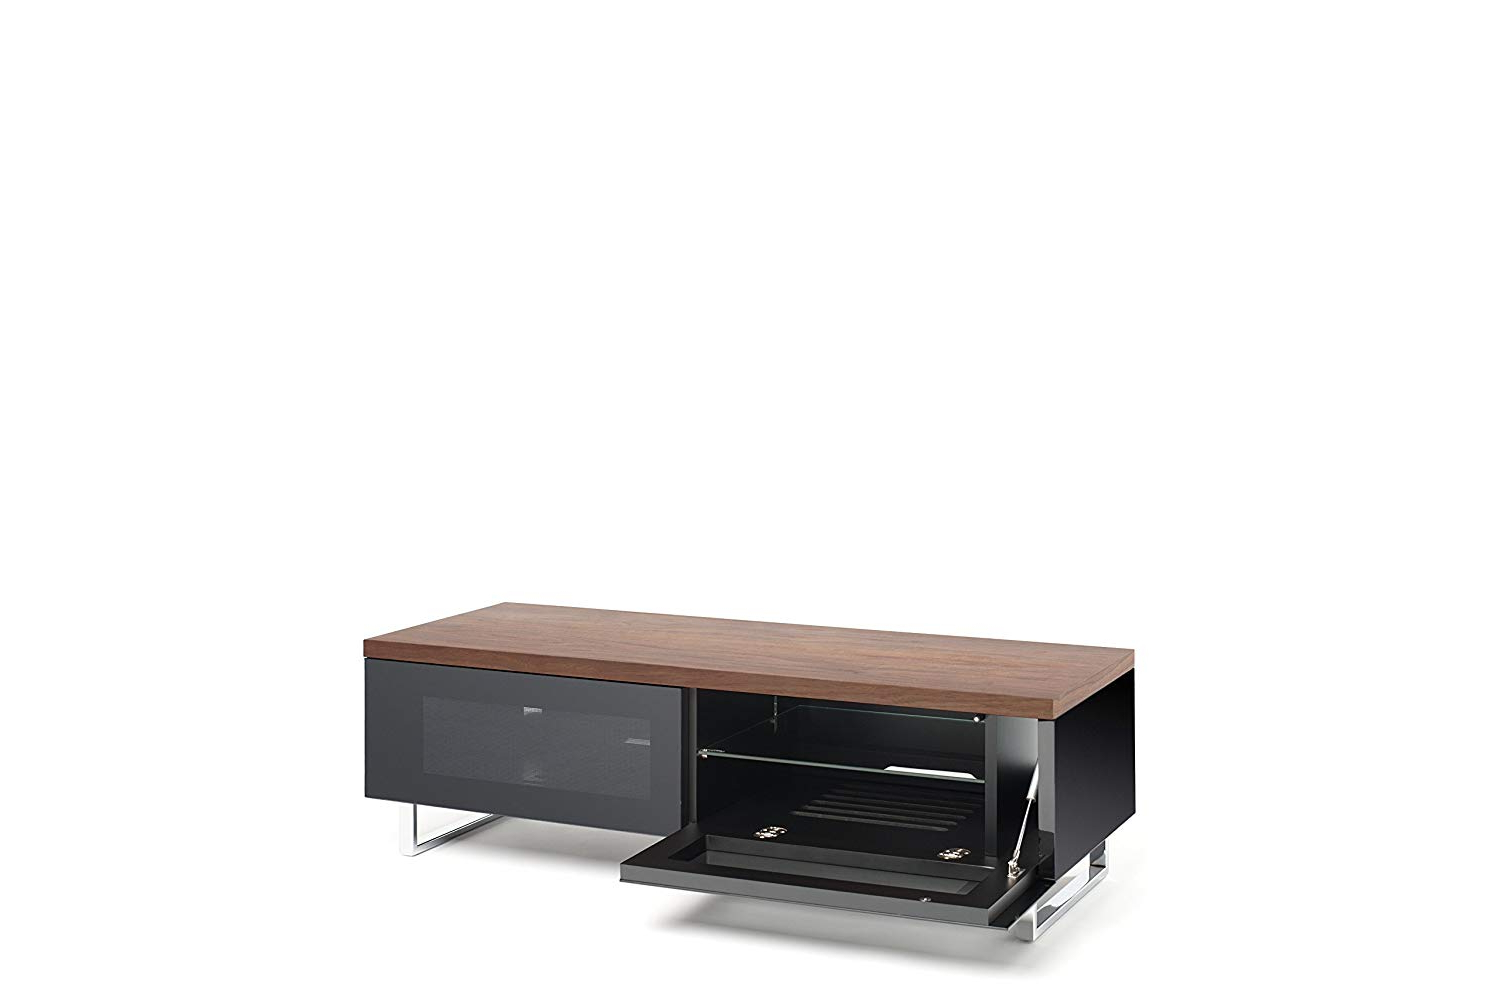 Techlink Panorama Walnut Tv Stands Intended For Preferred Techlink Panorama 120 Pm120w High Gloss Black Base With Walnut Top (View 10 of 20)